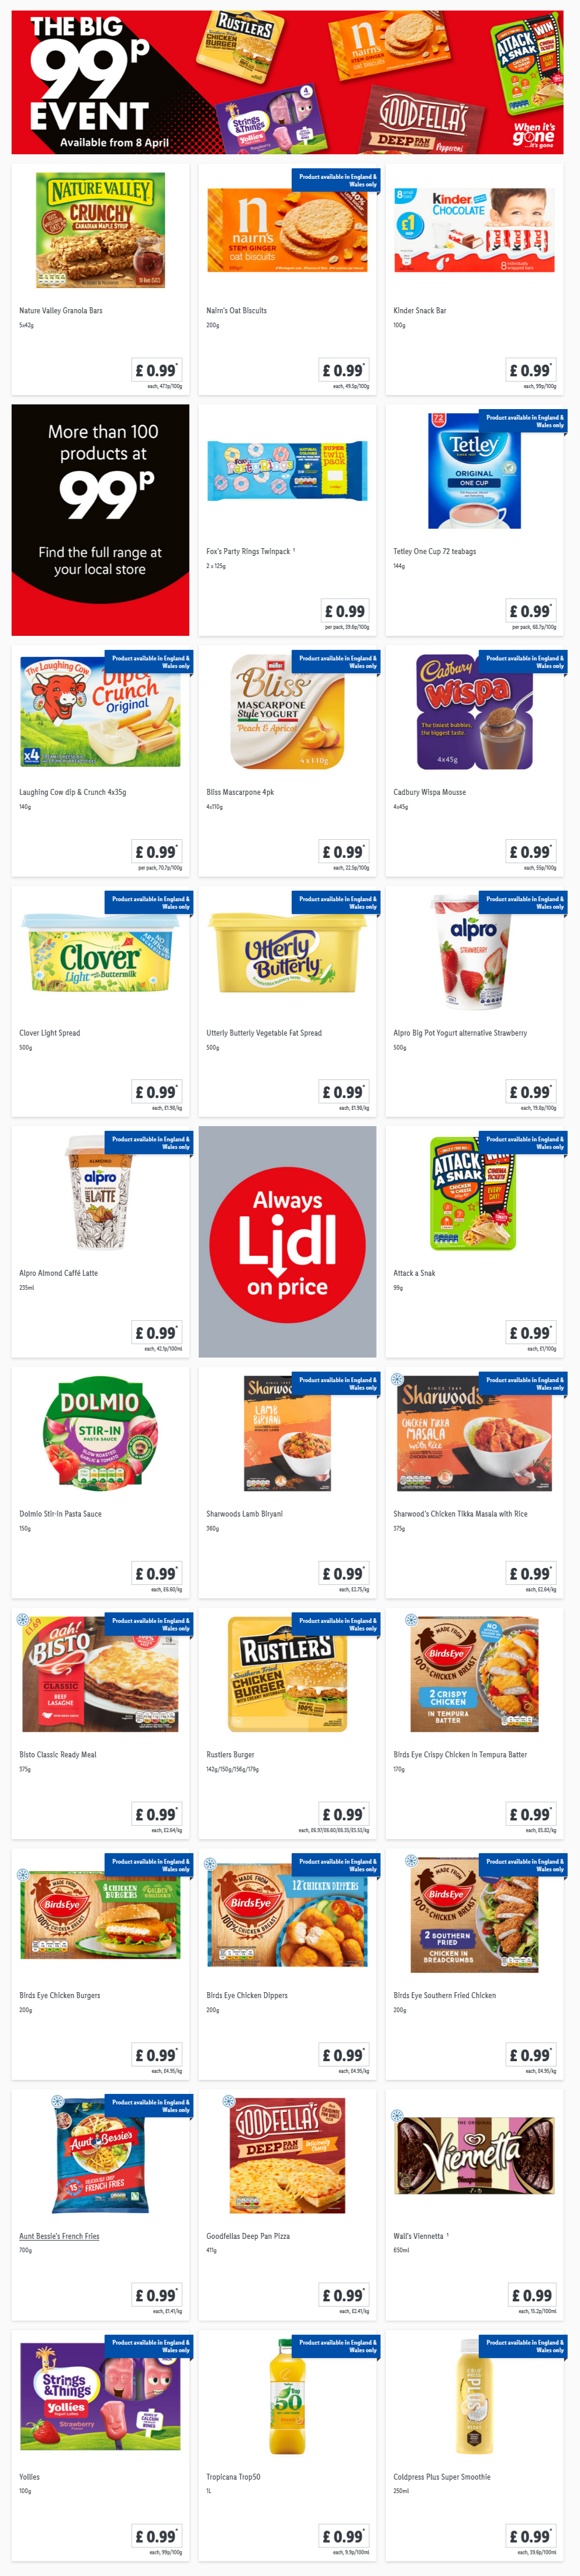 LIDL Offers this Thursday From 8th April 2021 LIDL The Big 99p Event